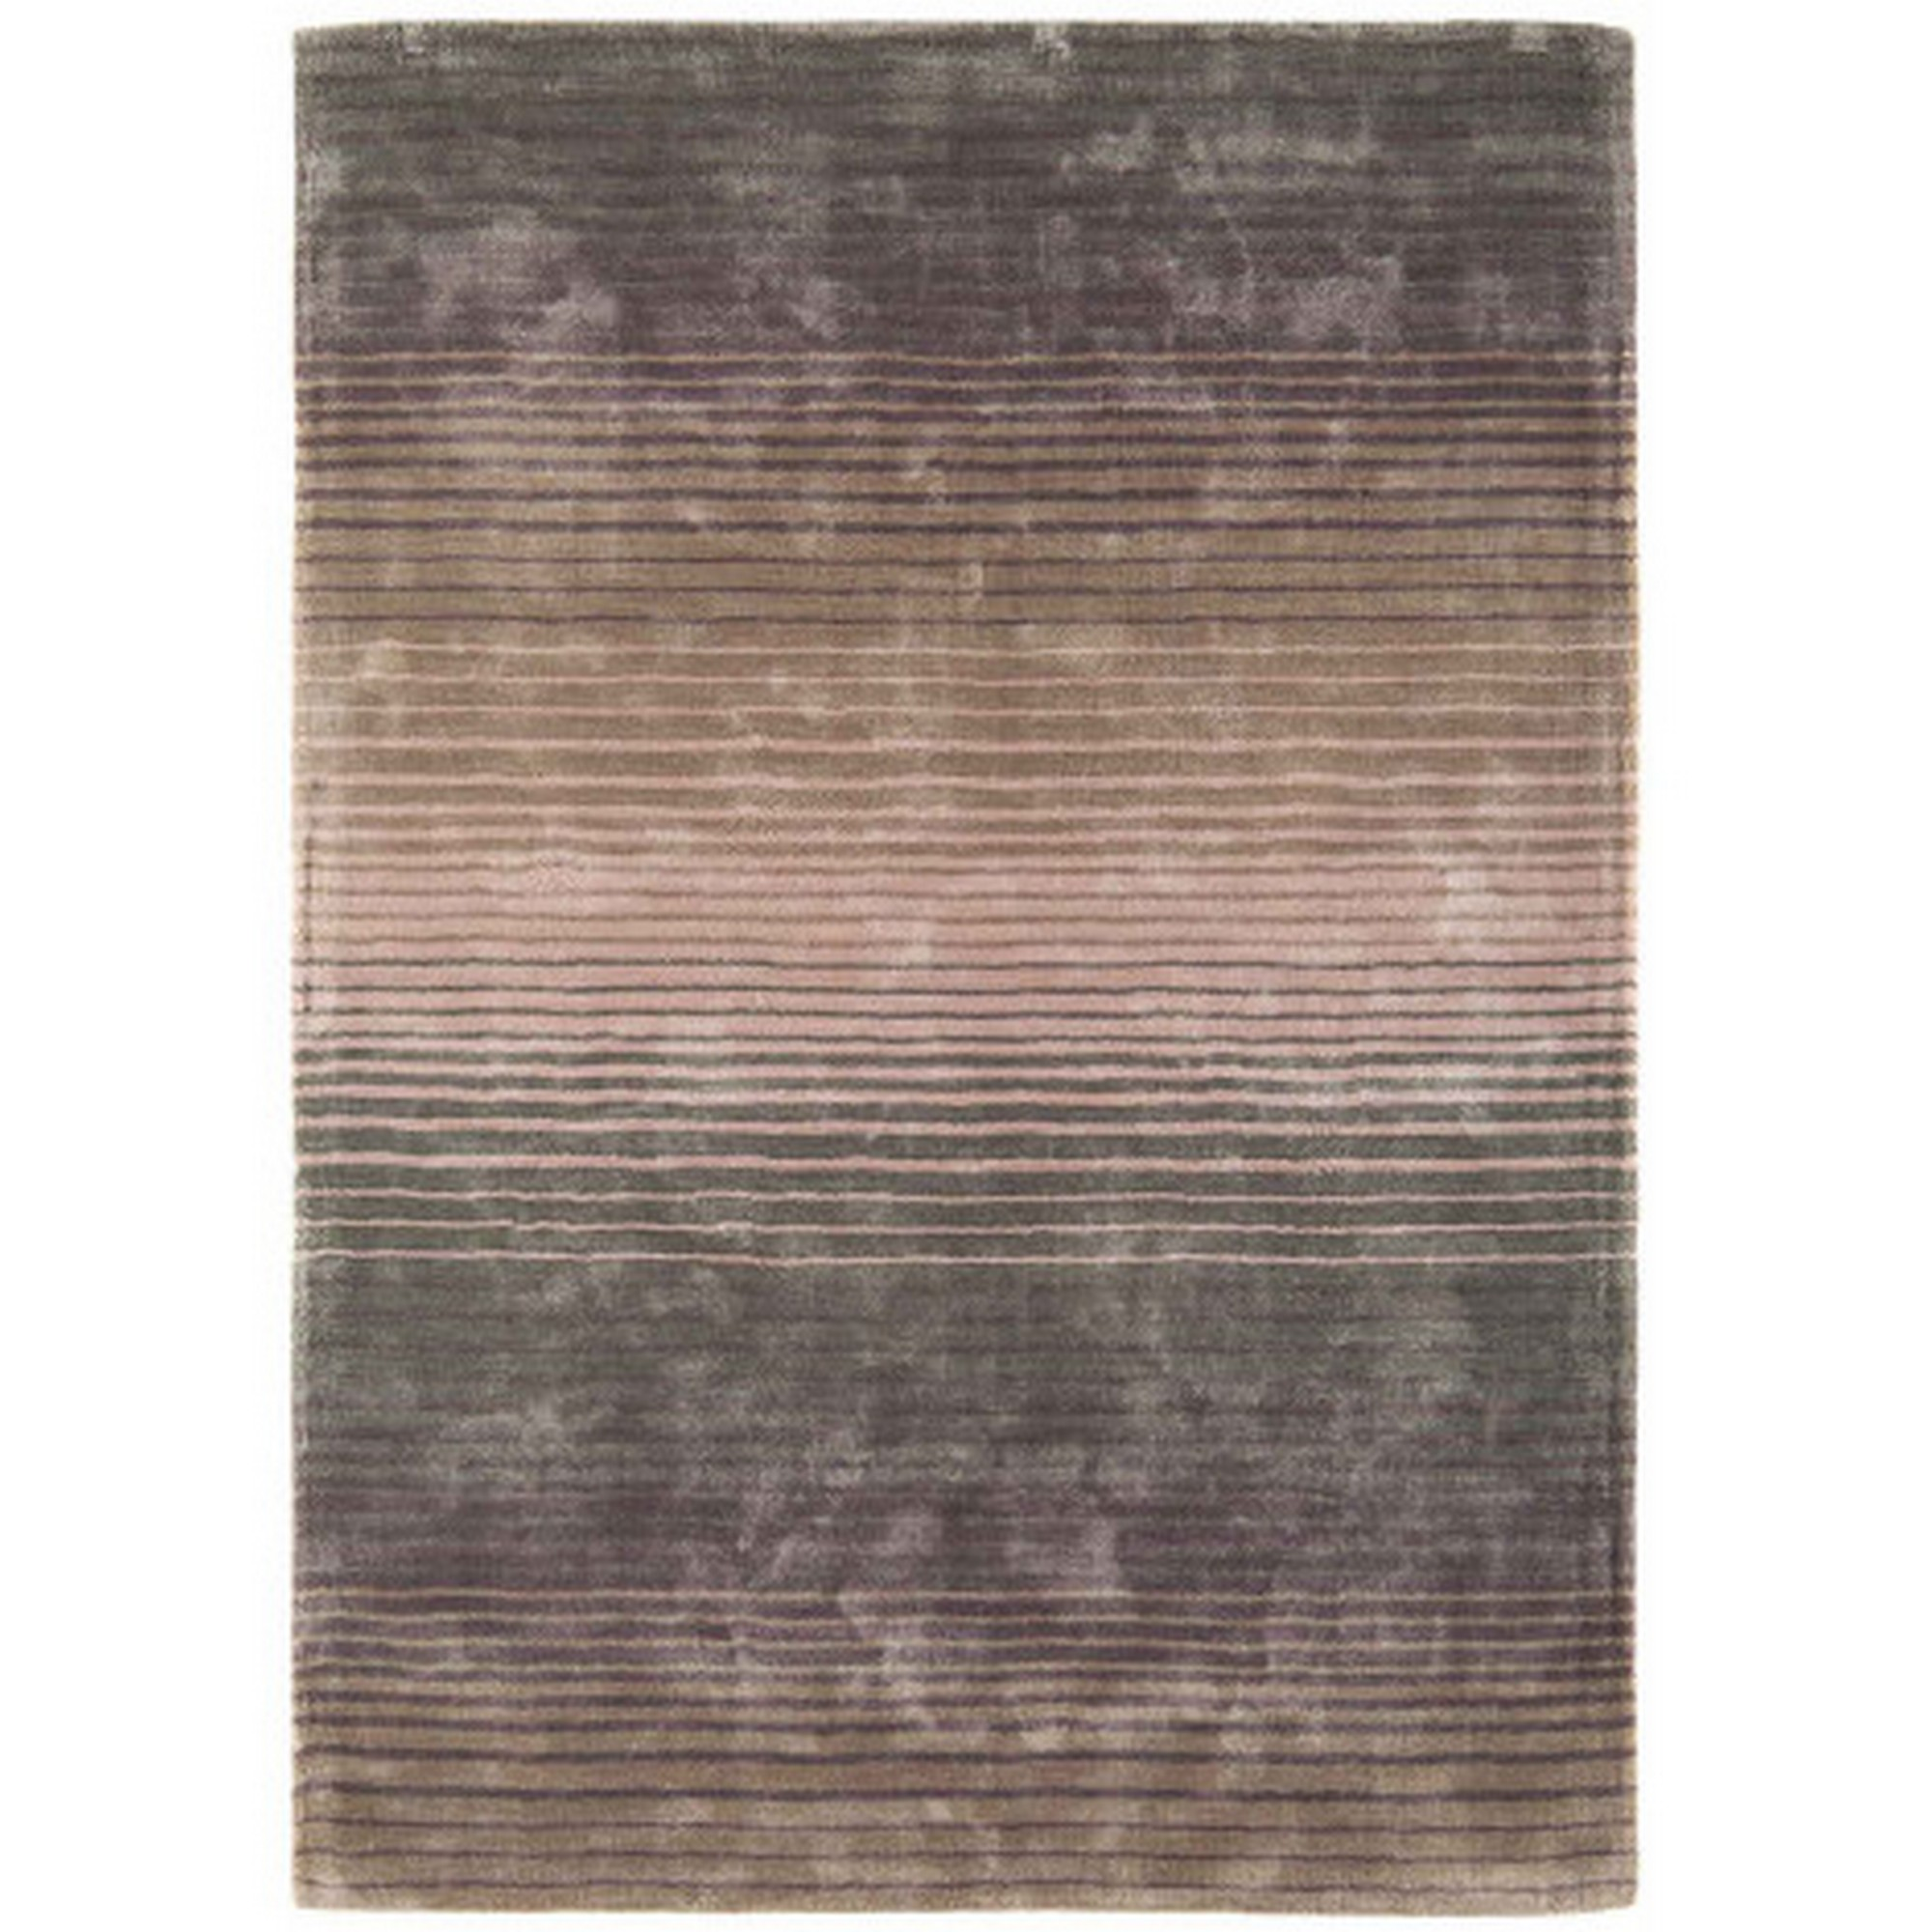 Holborn Rugs in Lunar